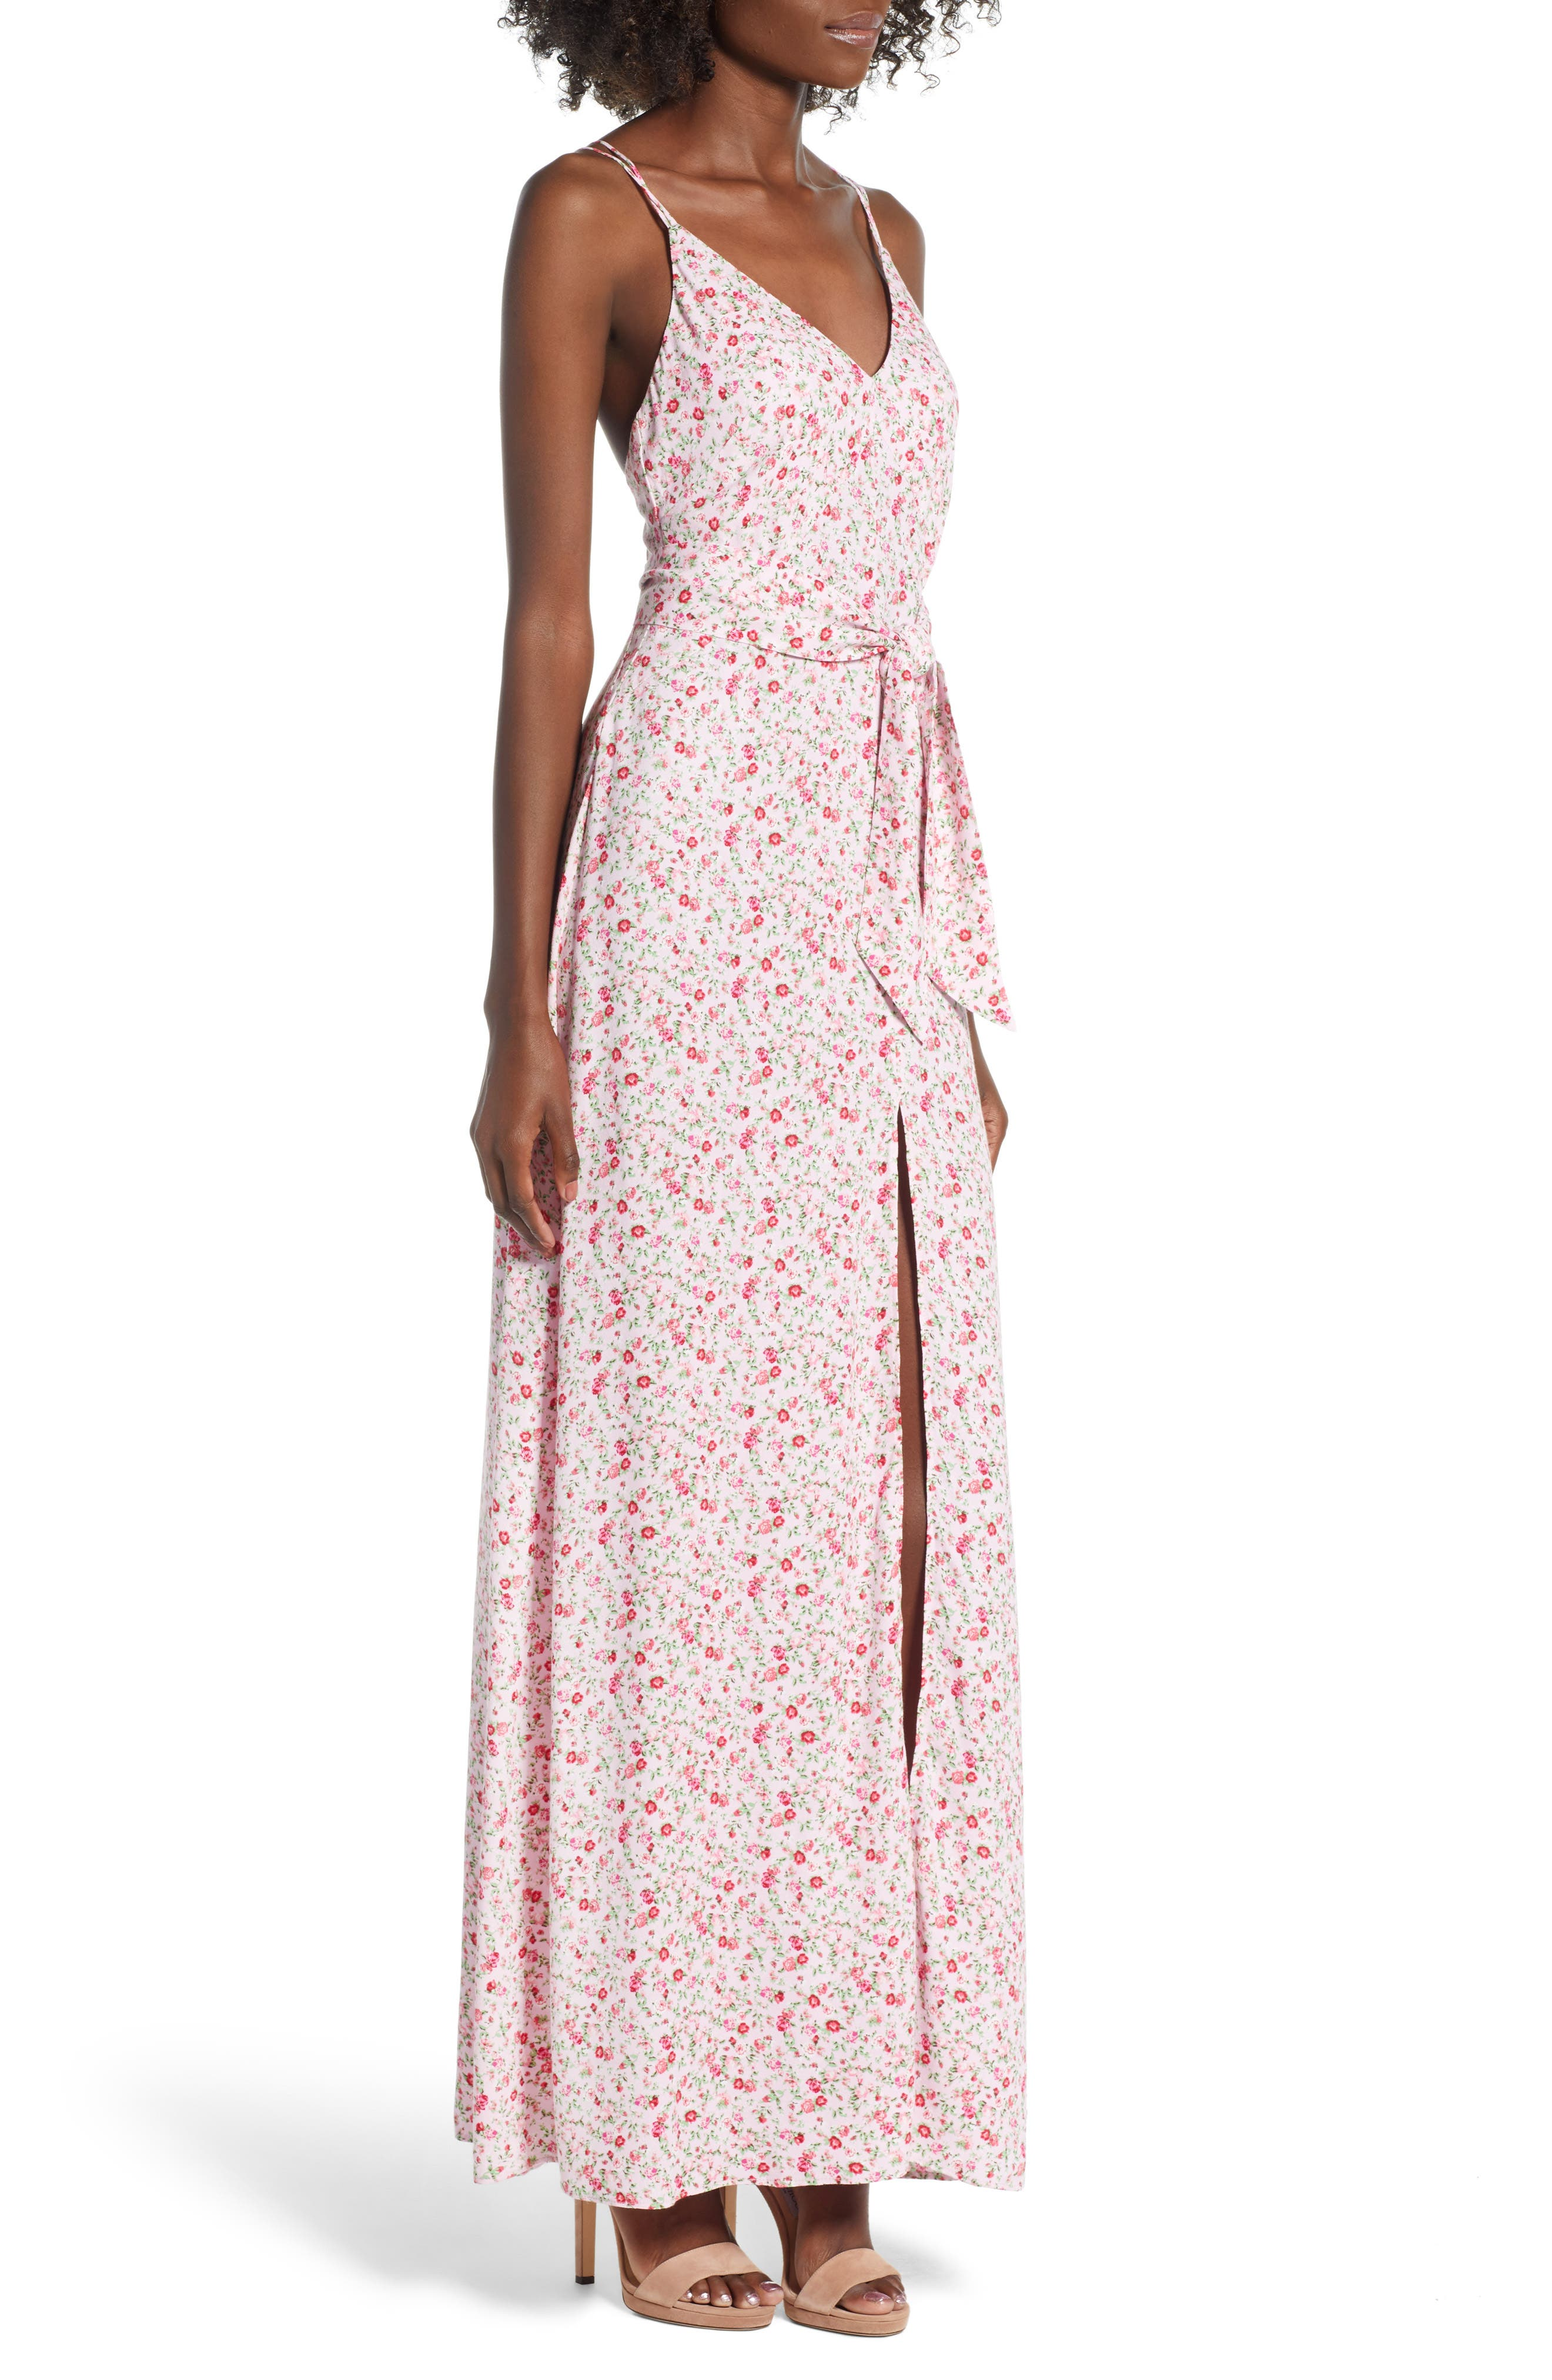 Diego Maxi Dress,                             Alternate thumbnail 3, color,                             BABY PINK DITSY